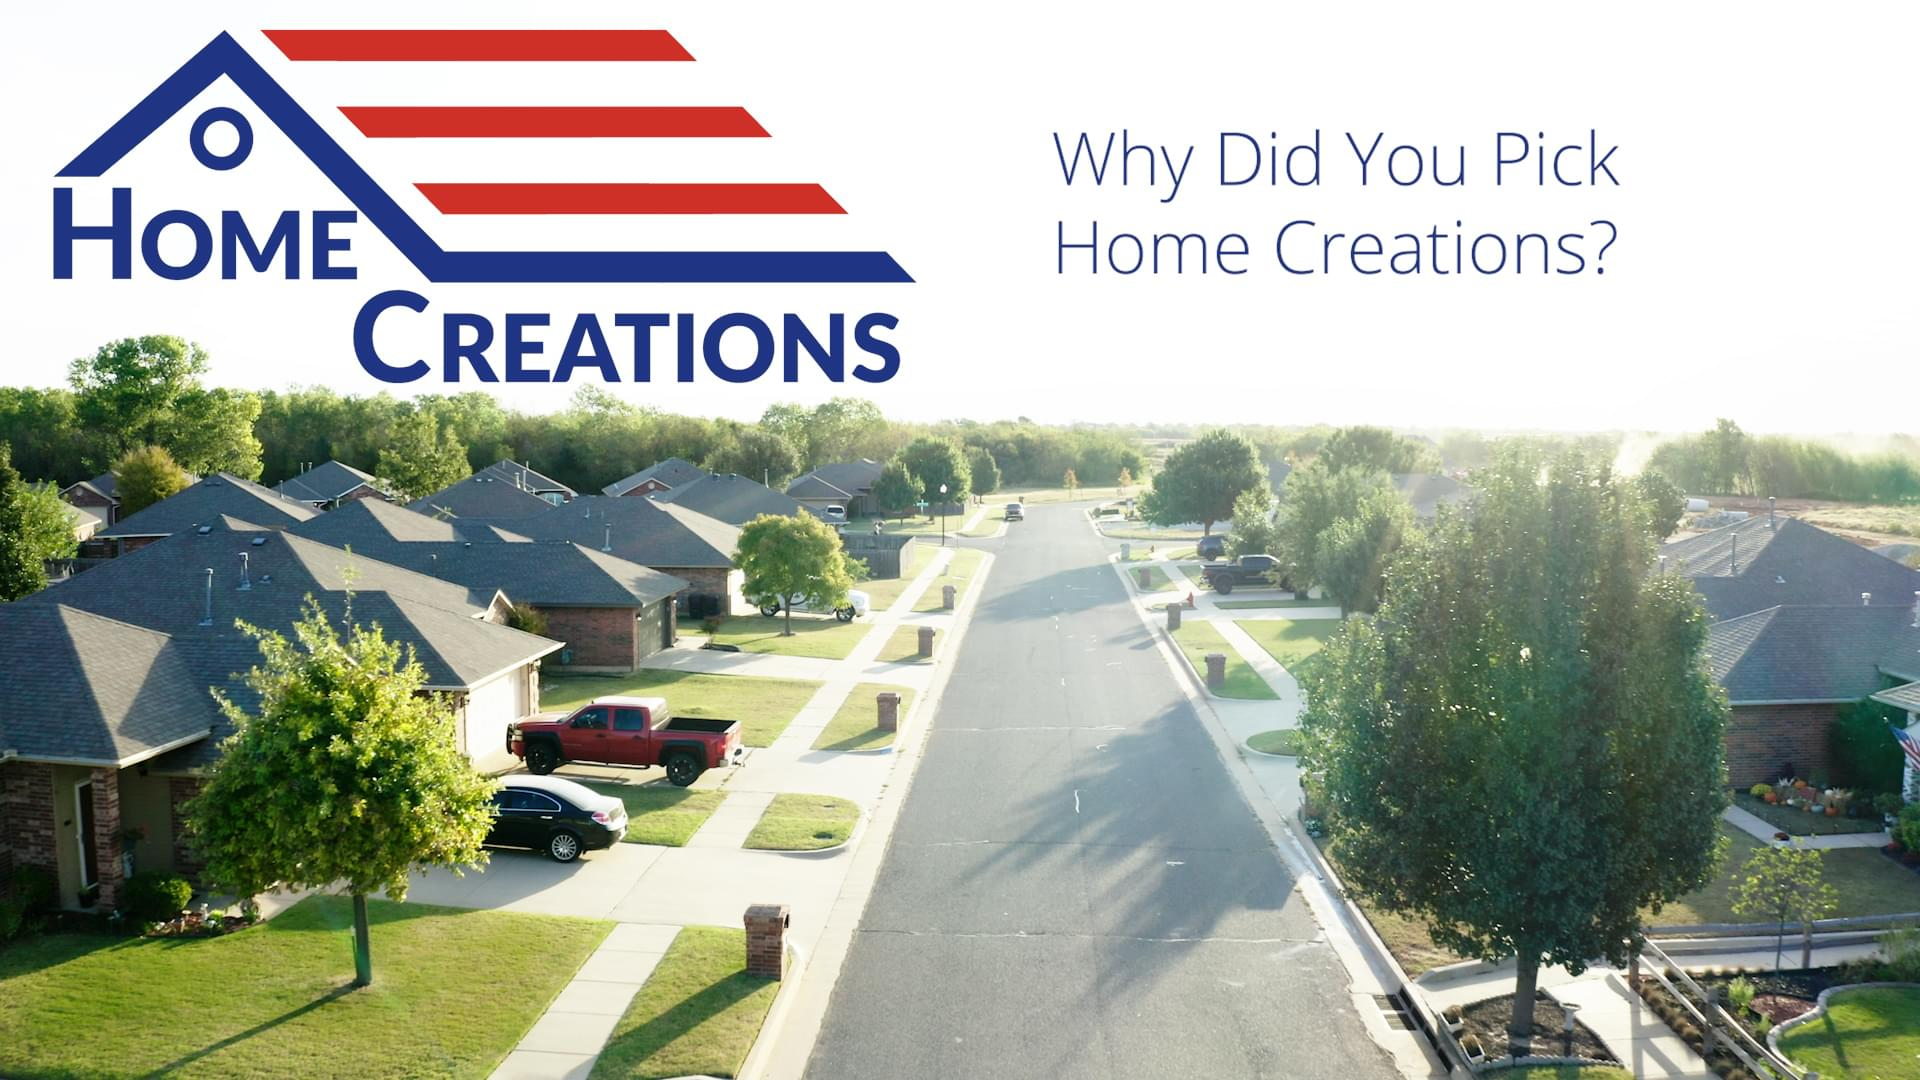 Why Did You Pick Home Creations?